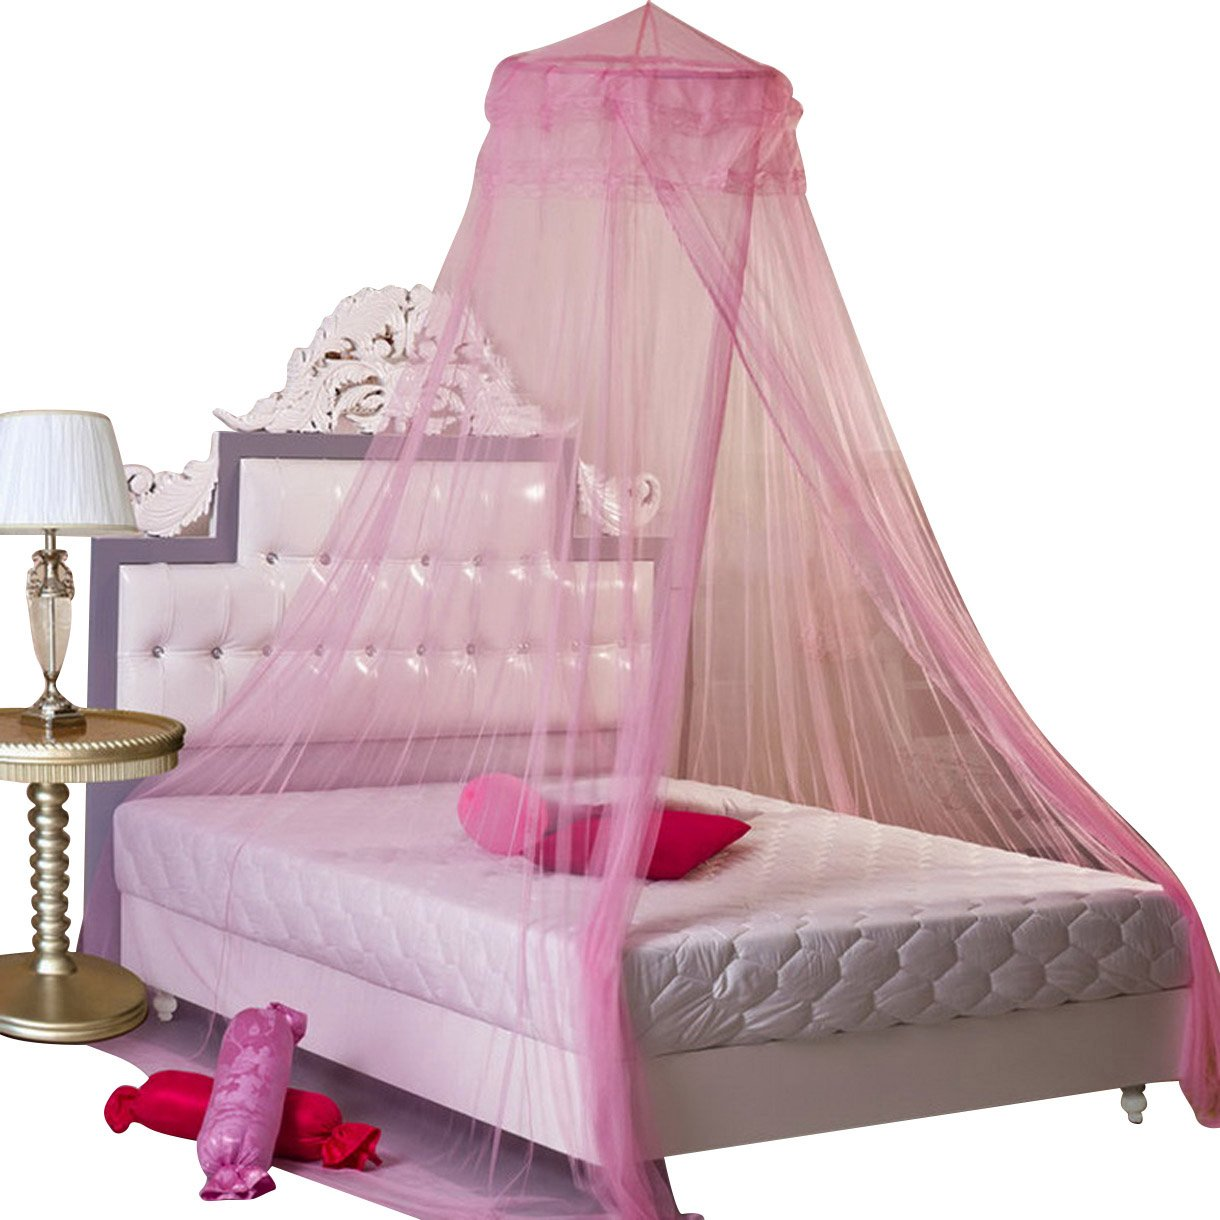 new round lace curtain dome bed canopy netting princess. Black Bedroom Furniture Sets. Home Design Ideas